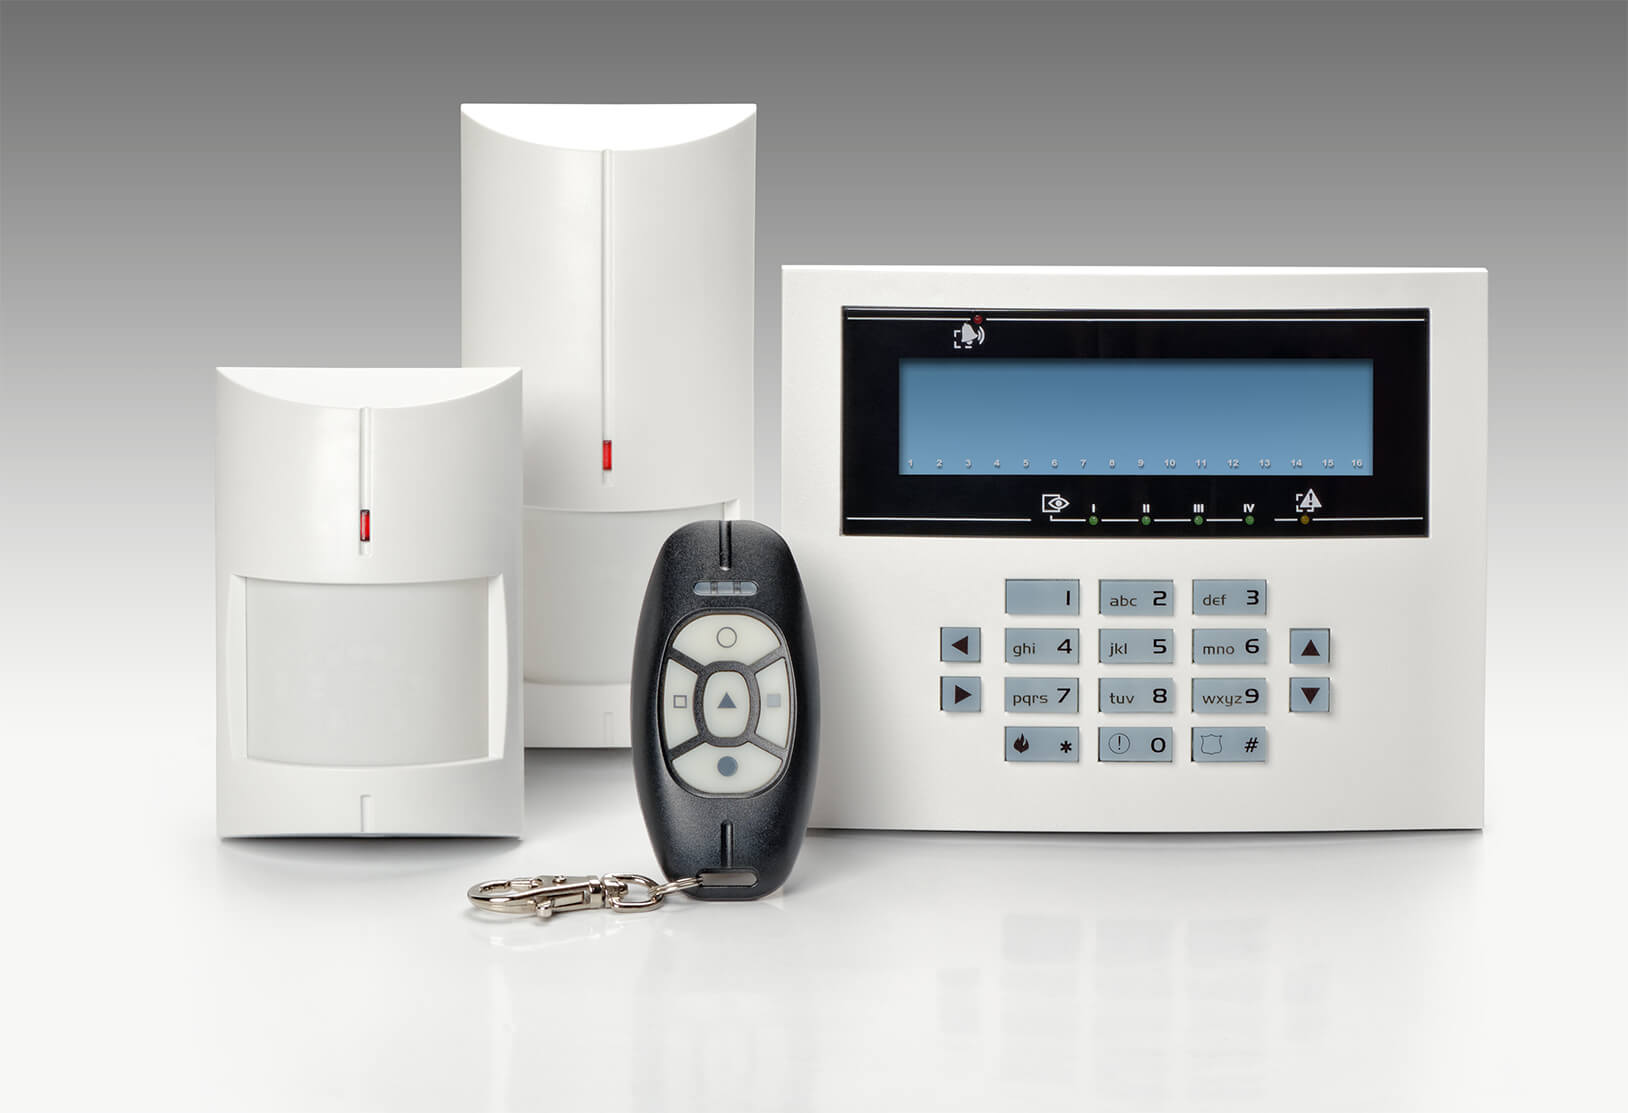 Business & Residential NACOSS Approved Burglar Alarms In Aldgate E1 - Local Aldgate E1 security company.Call 02078872244 - Dedicated to Safety & Security. Companies, shops and homes ..